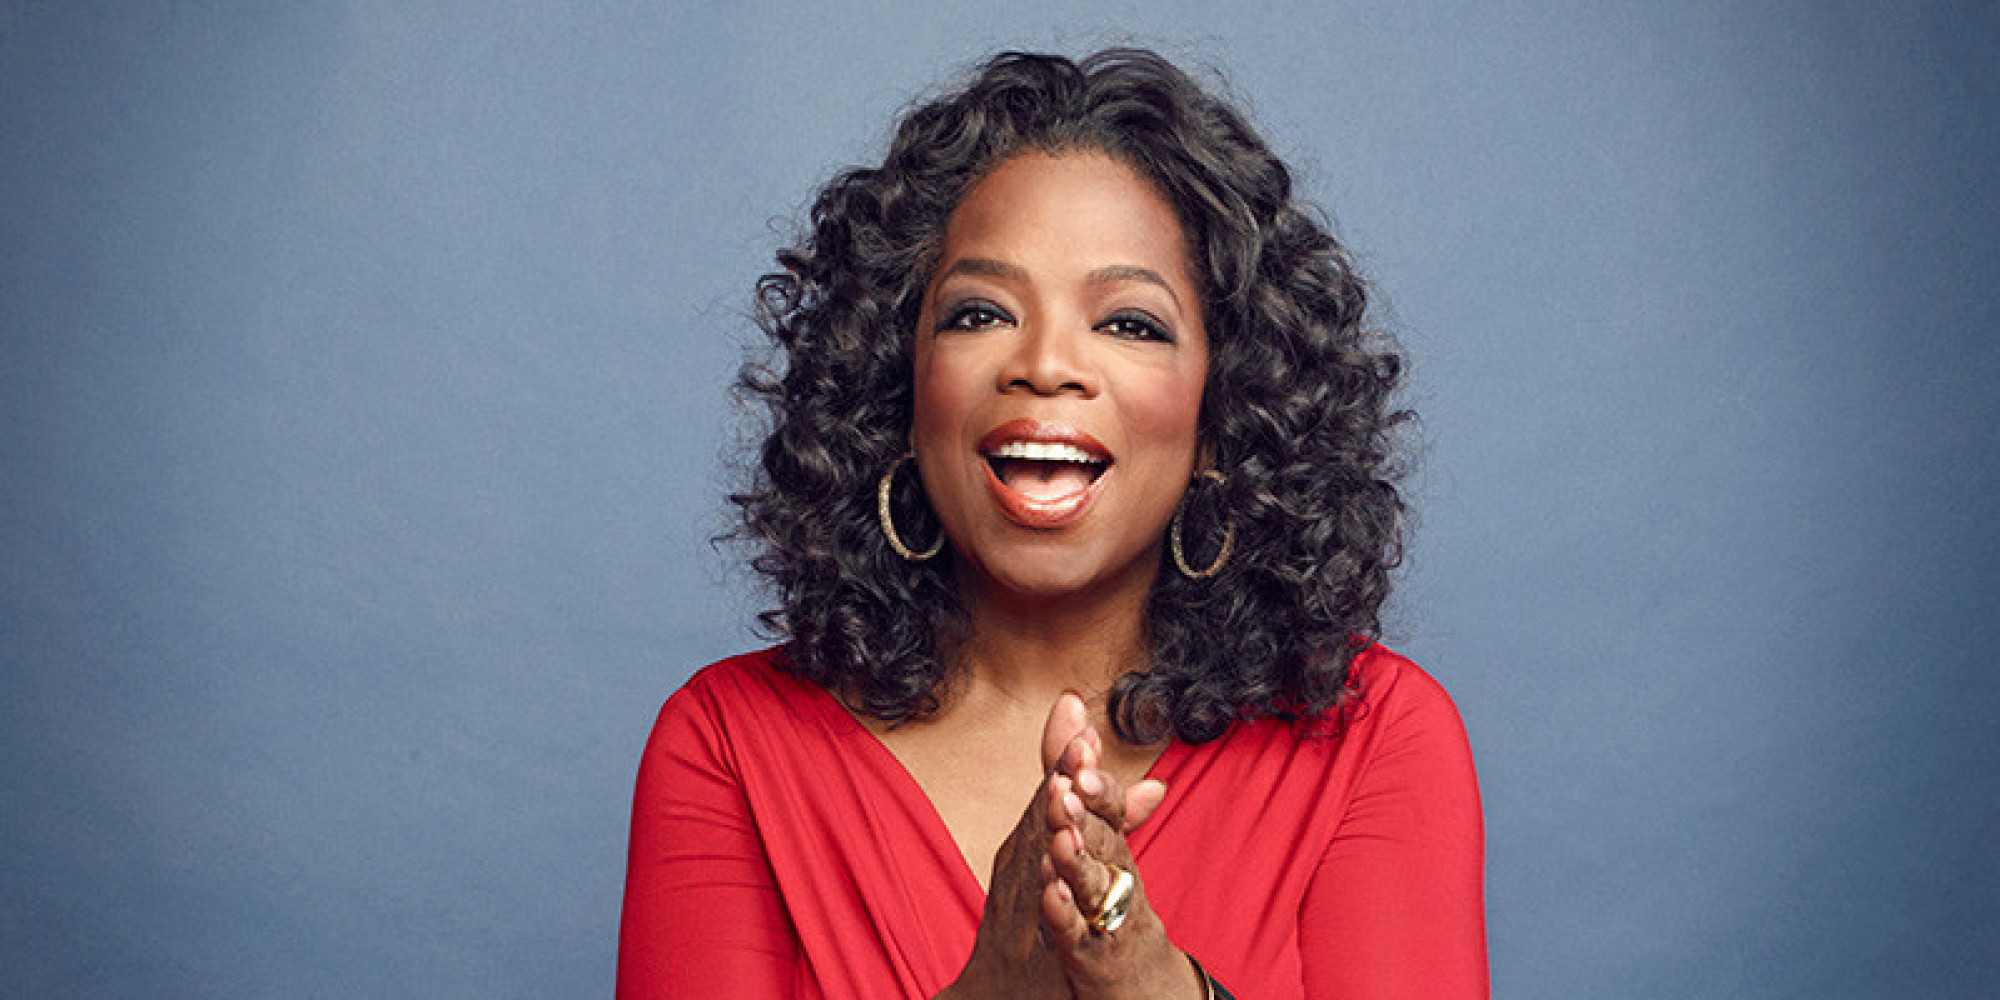 "We all know Oprah Winfrey as the embodiment of success and empowerment, but she has surpassed that as she ranks #2 with a net worth of $3.1 billion. Winfrey has made her mark through hard work and persistence at it's finest coming from humble beginnings in Mississippi to being a producer, host, actress, philanthropist, entrepreneur and tv personality.   Named the ""Queen of Media"" through her many ventures including being the producer and host of The Oprah Winfrey Show which had 25 seasons alongside establishing her own channel, OWN in 2011.  In the fall, Winfrey shot back-to-back roles in ""The Immortal Life of Henrietta Lacks"" and ""A Wrinkle in Time."" Talk about being an asset, Winfrey teamed up with Weight Watchers and has added $100 million to their stock when she dropped 40 lbs."